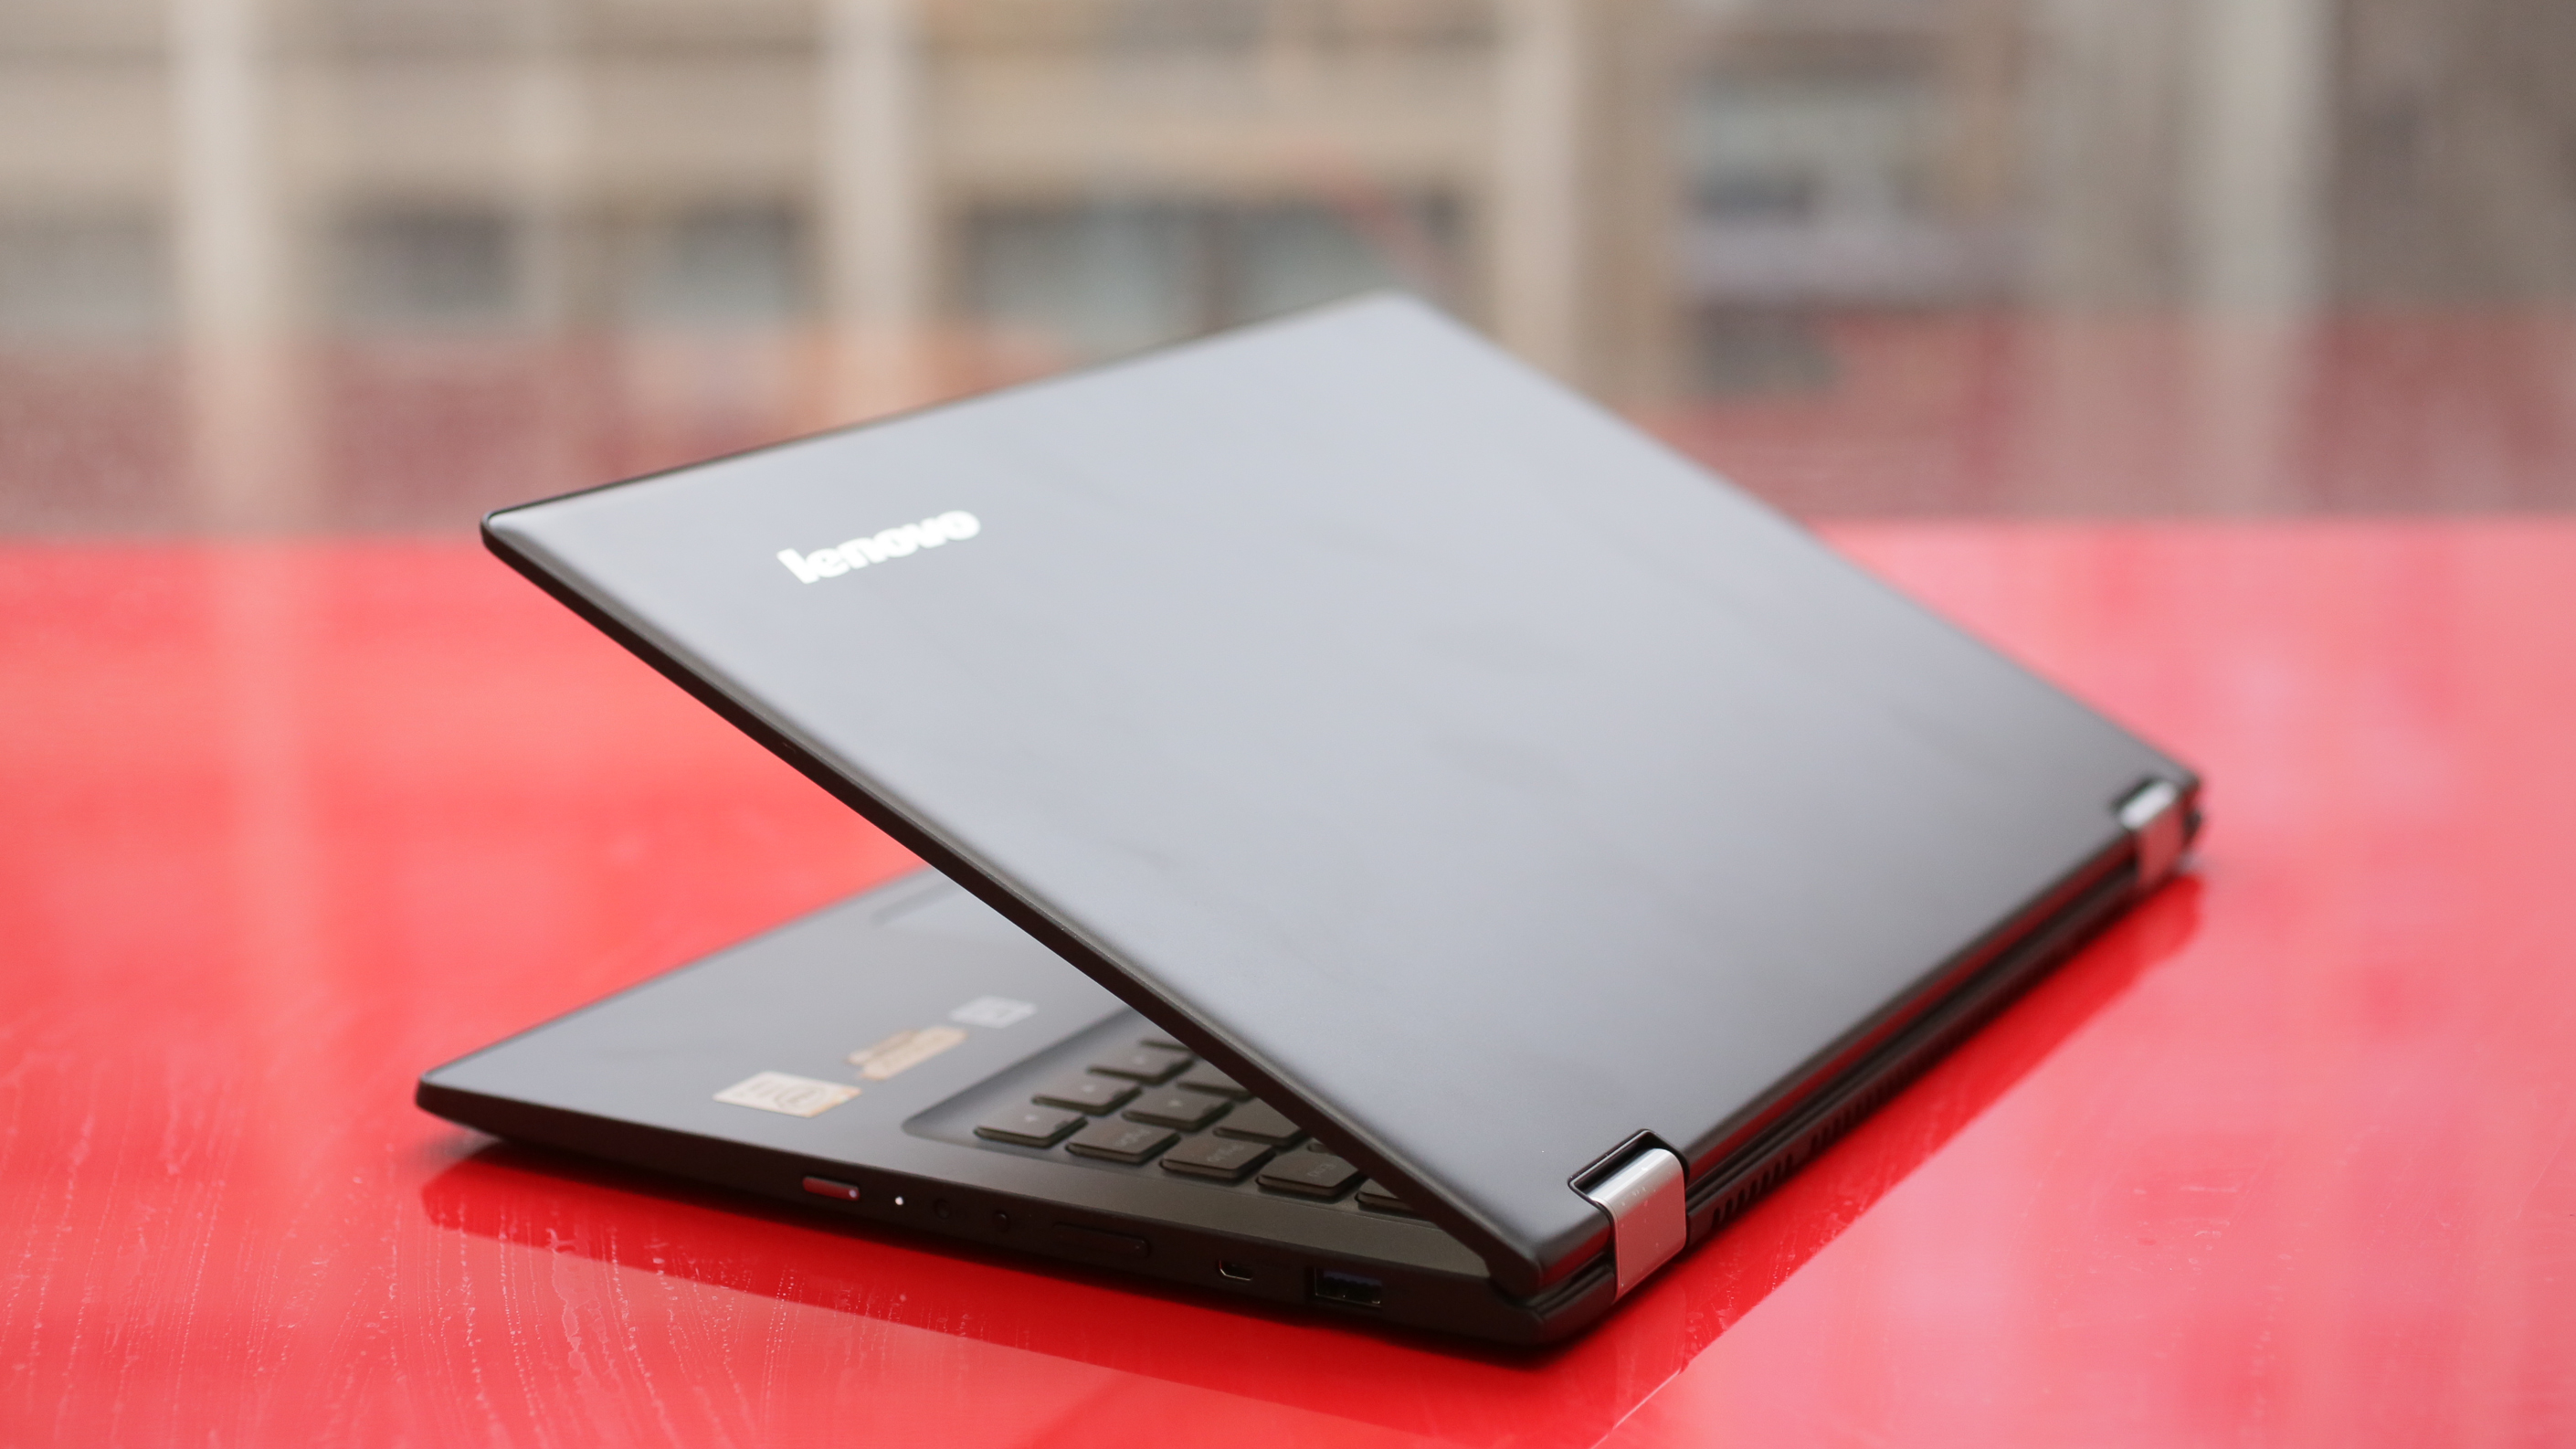 lenovo-yoga-2-13-inch-product-photos08.jpg